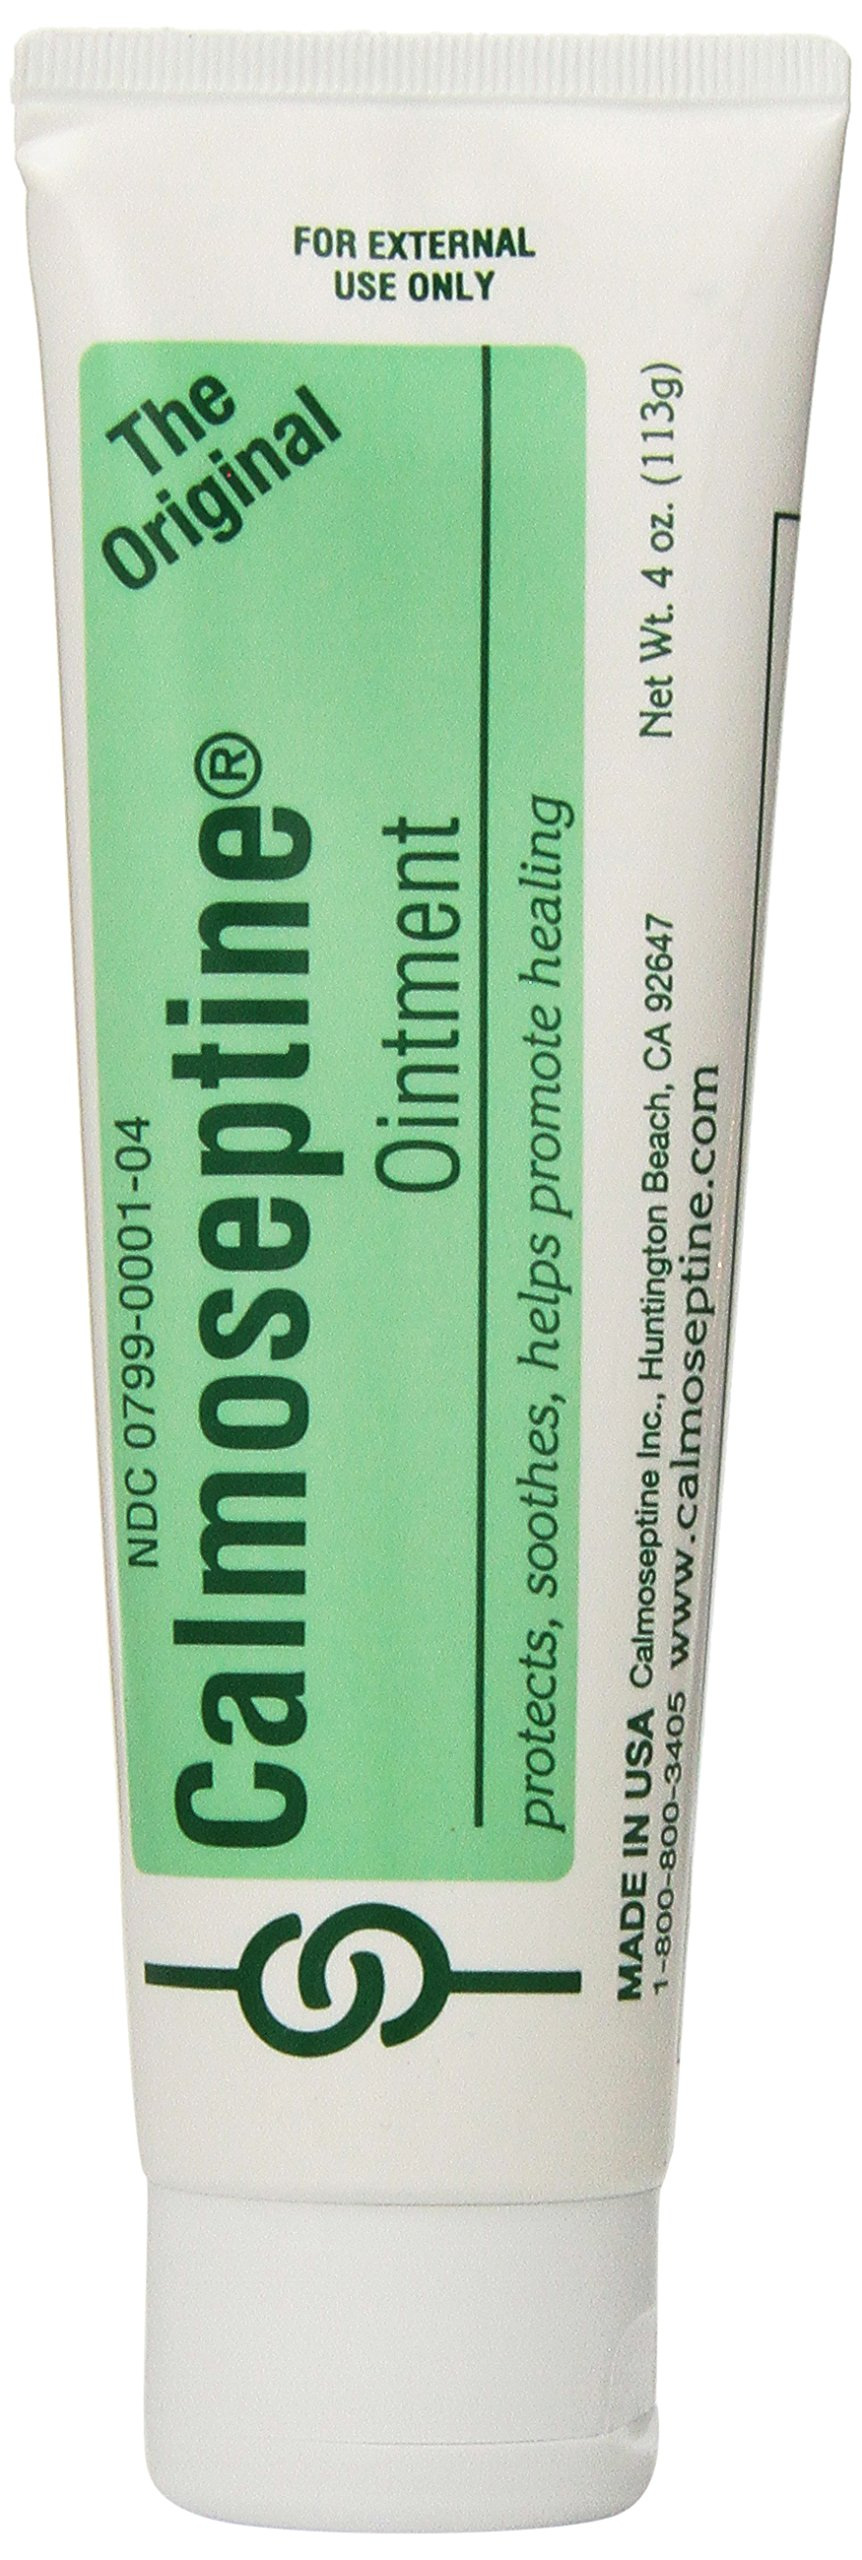 Calmoseptine Ointment Tube, 4 Ounce (Pack of 3) by Calmoseptine